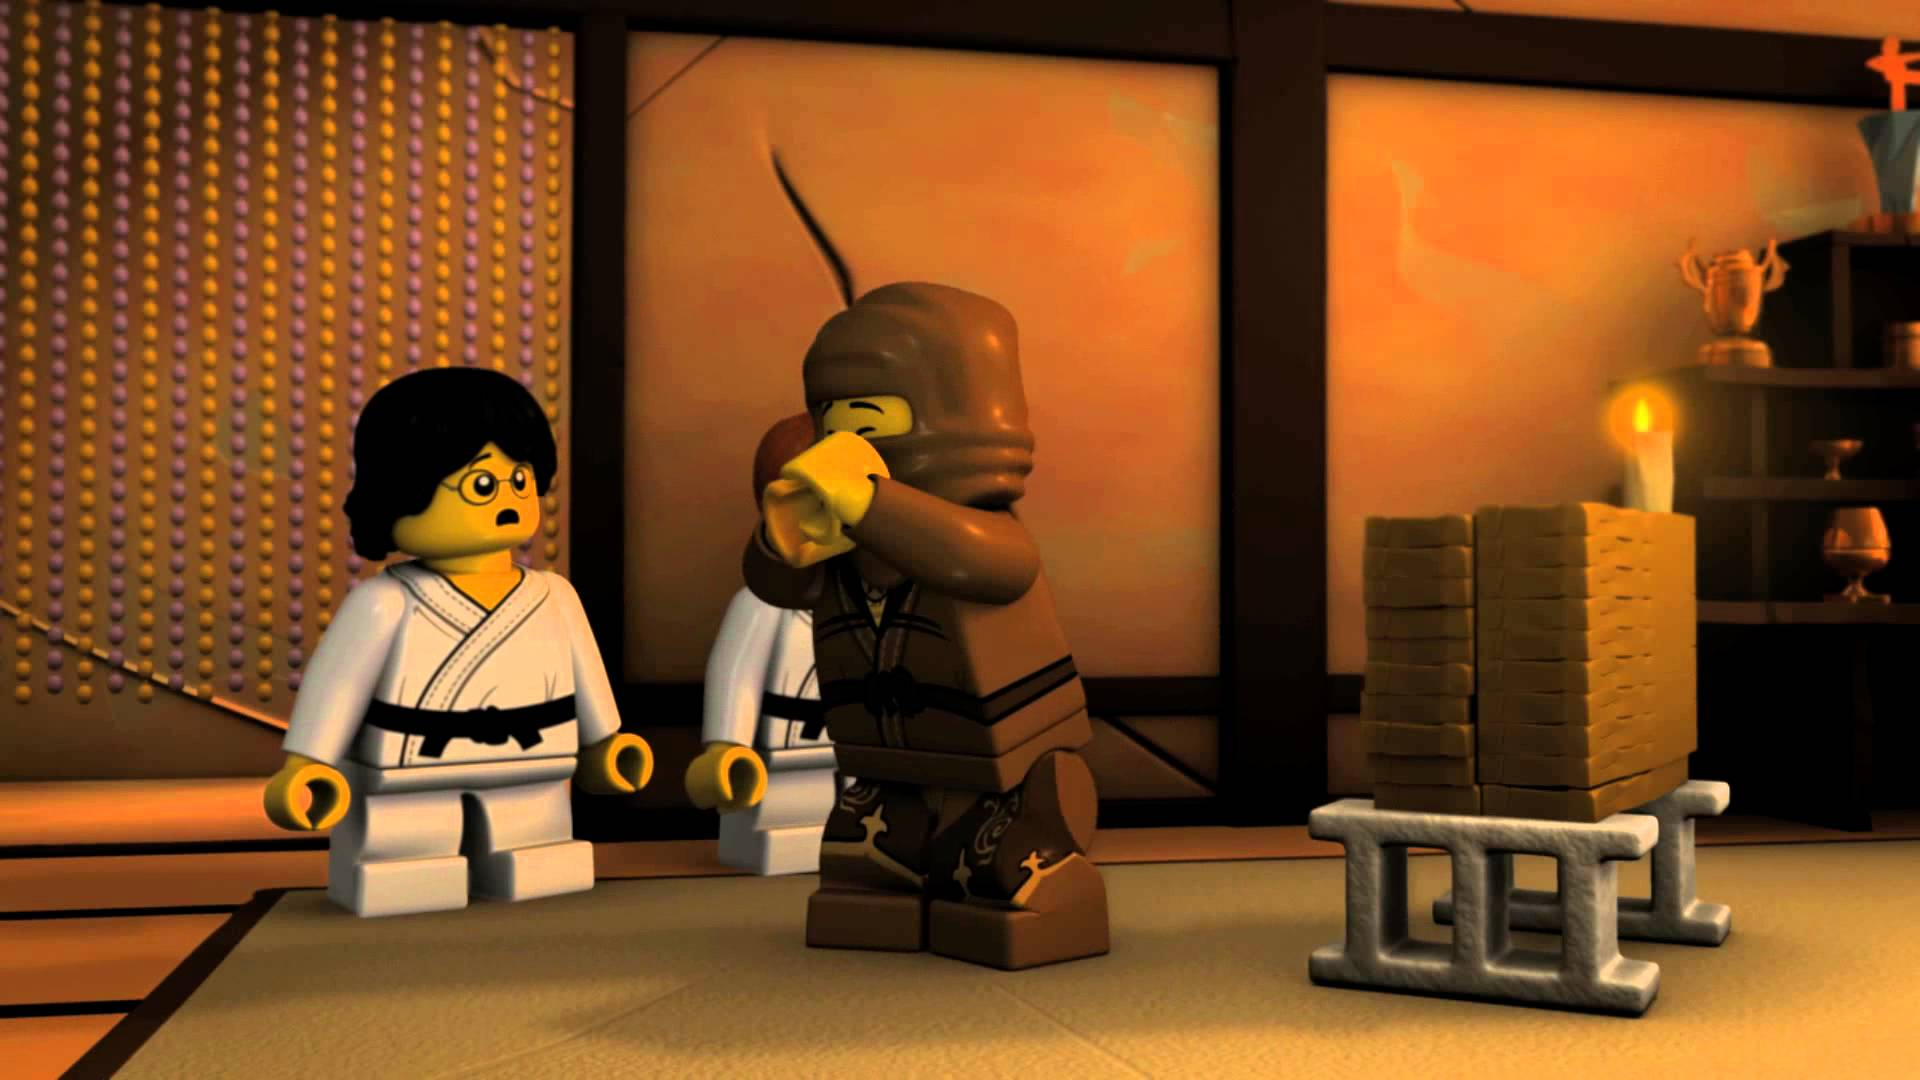 lego ninjago wallpaper high - photo #23